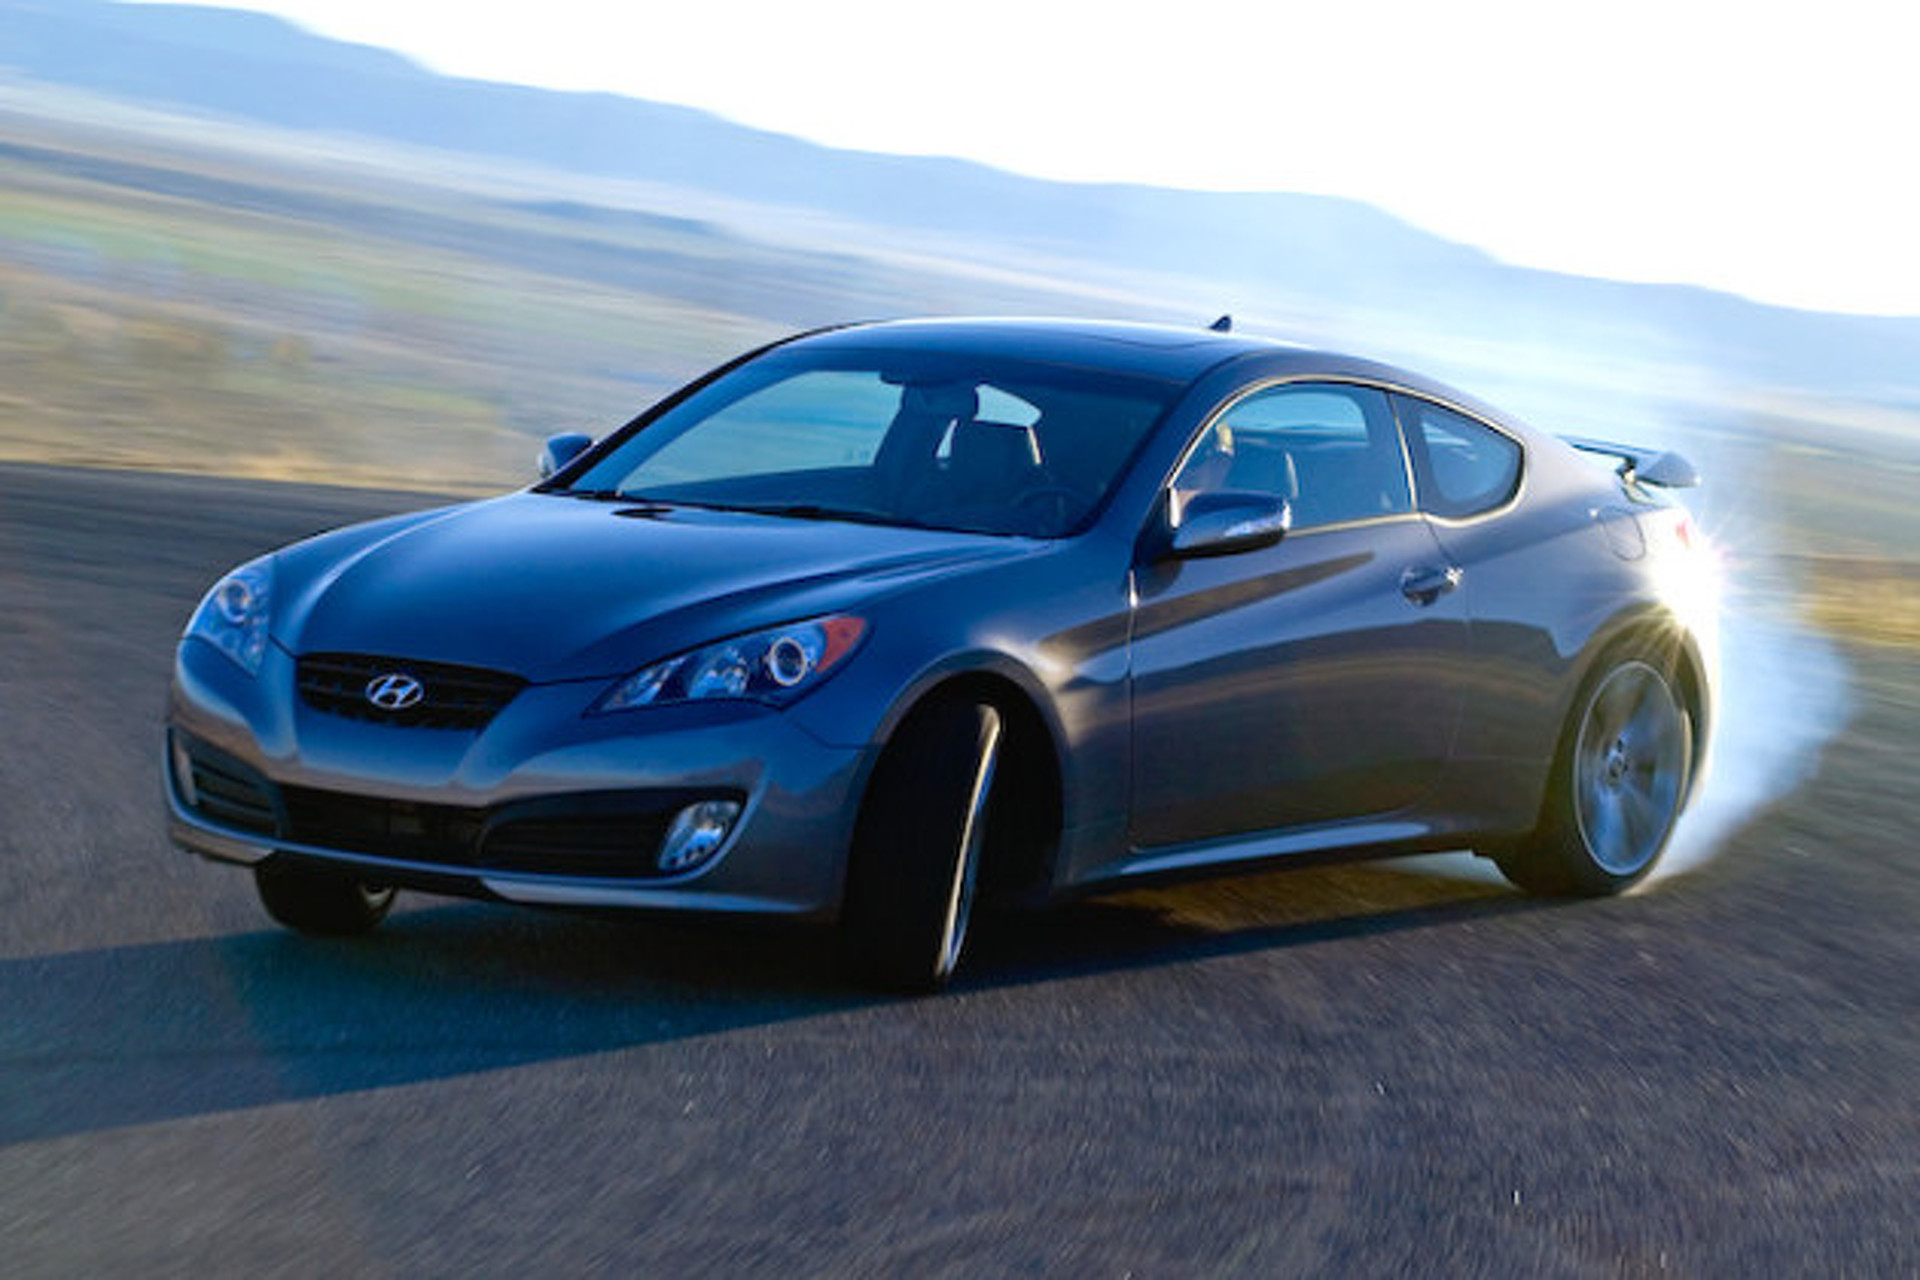 Hyundai Says No To V8-Powered Genesis Coupe, Yes to Veloster